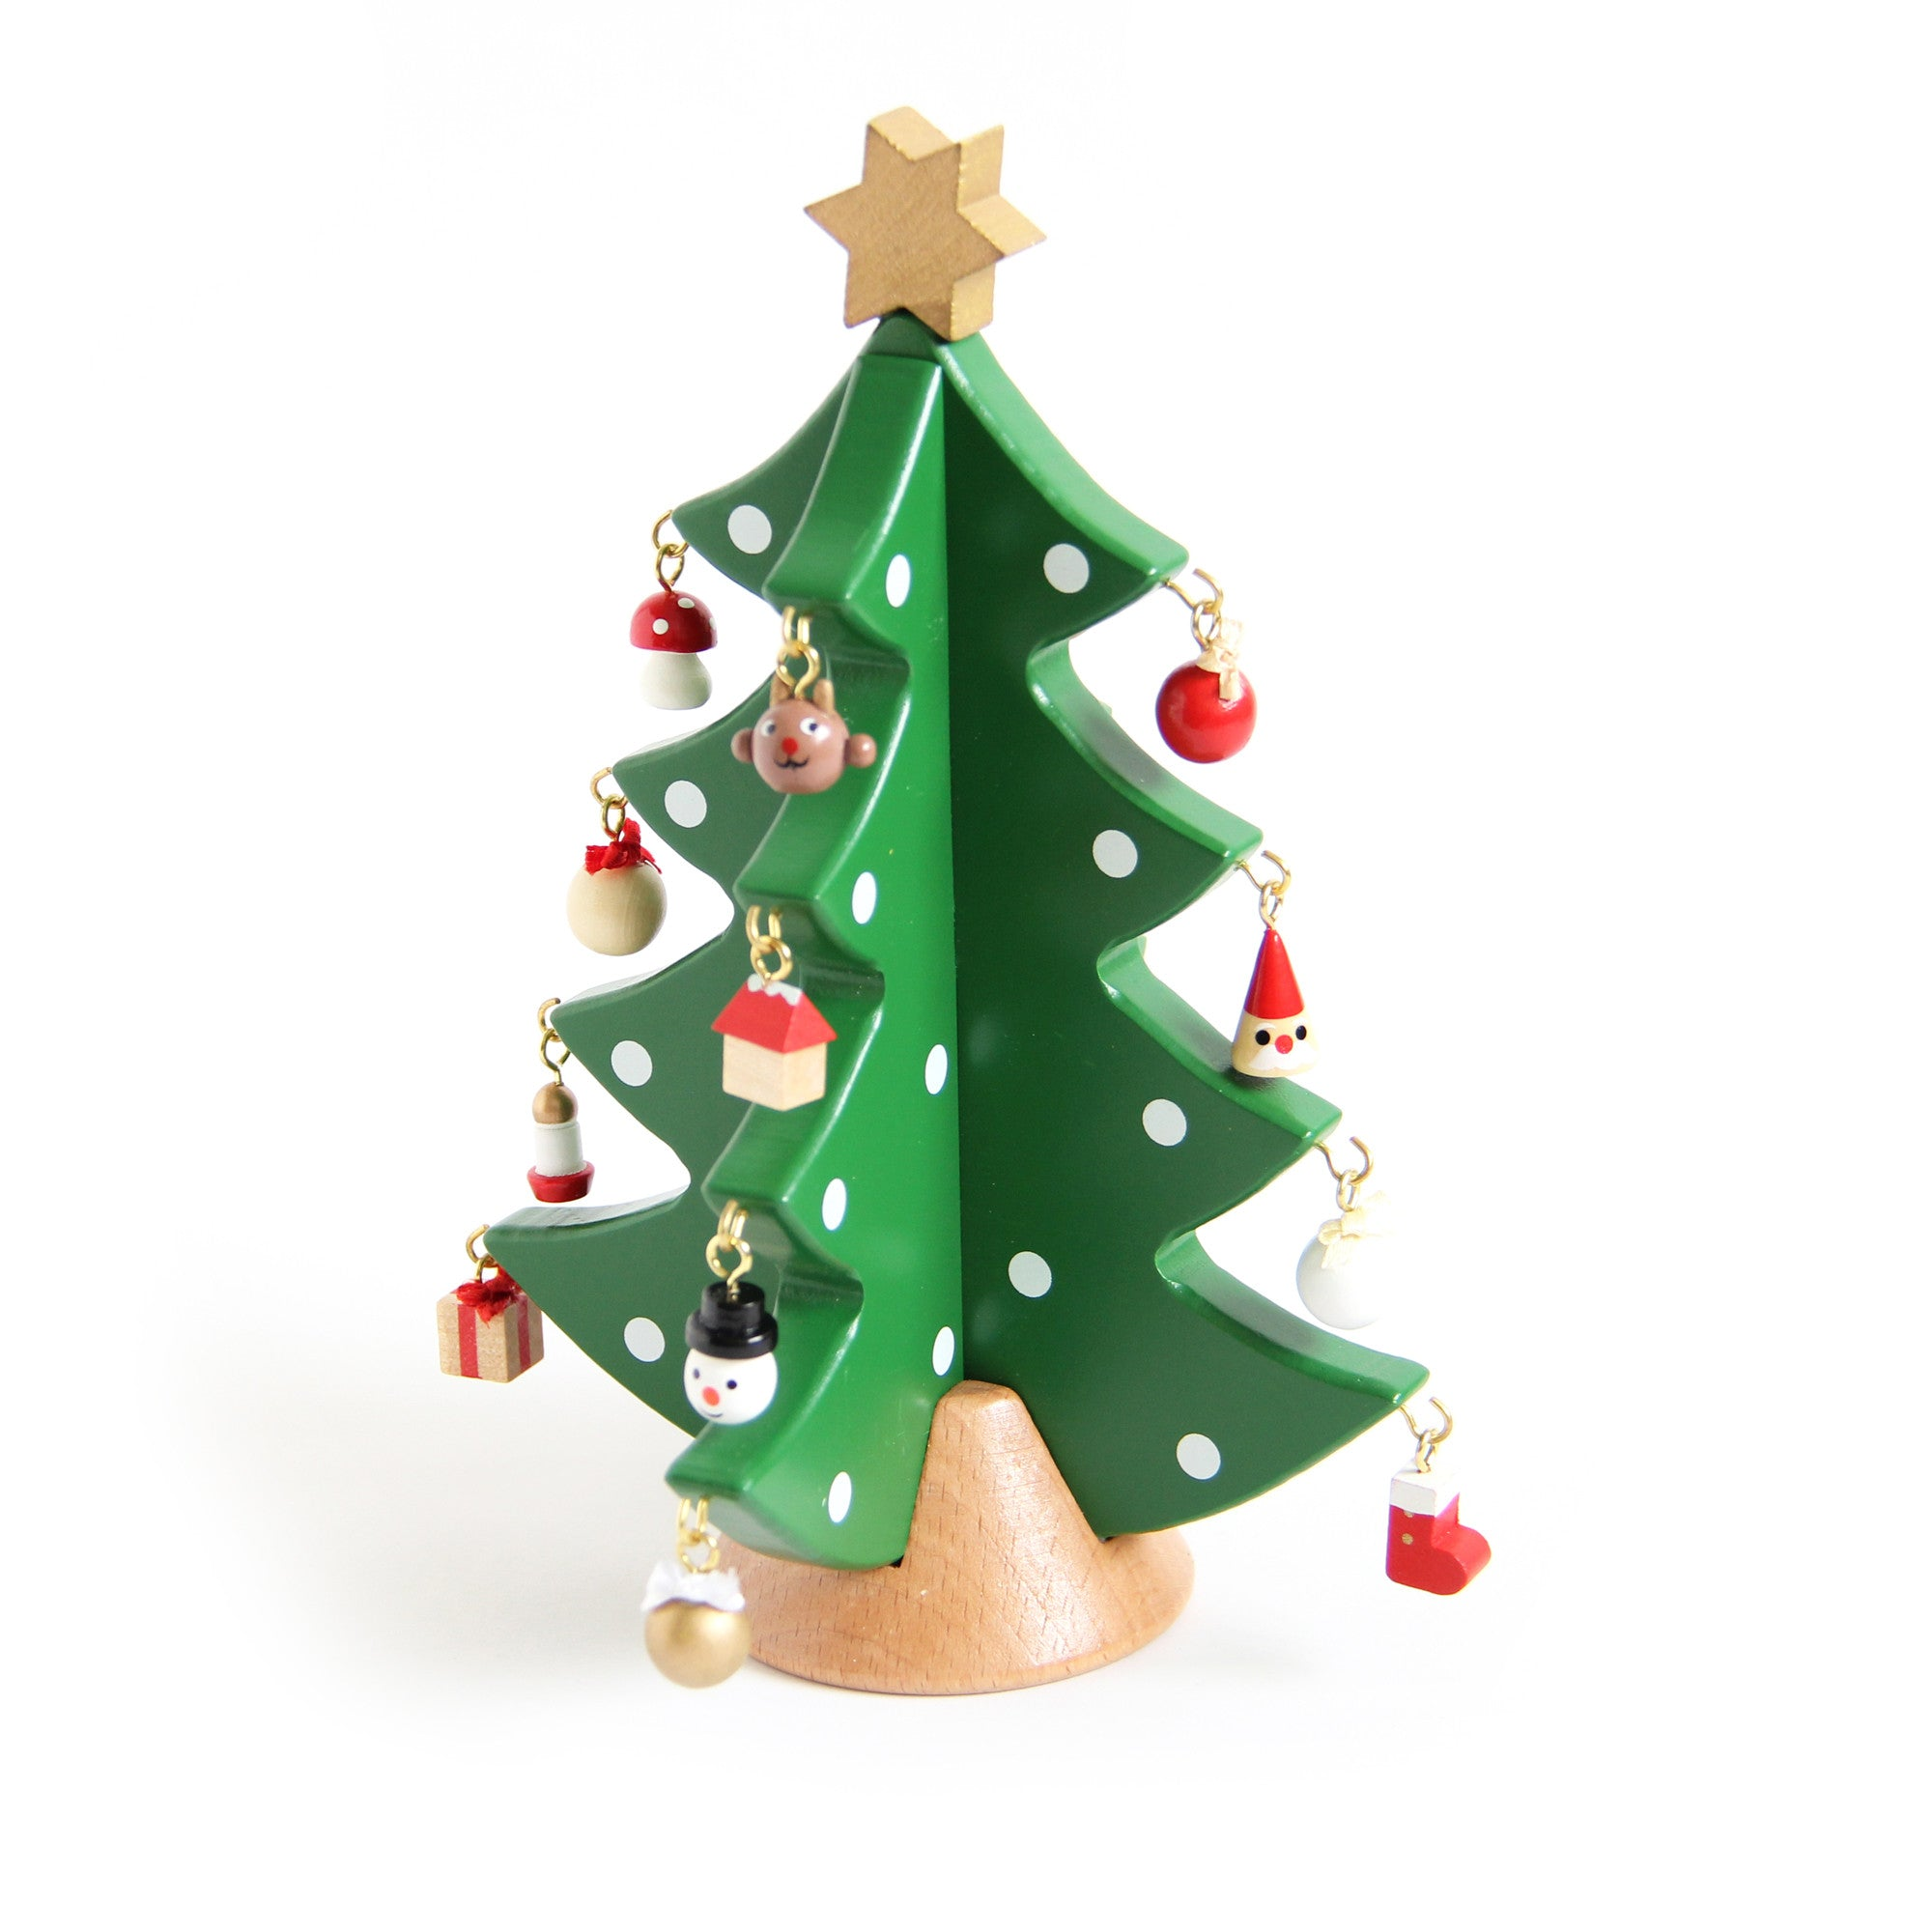 Miniature Wooden Tree